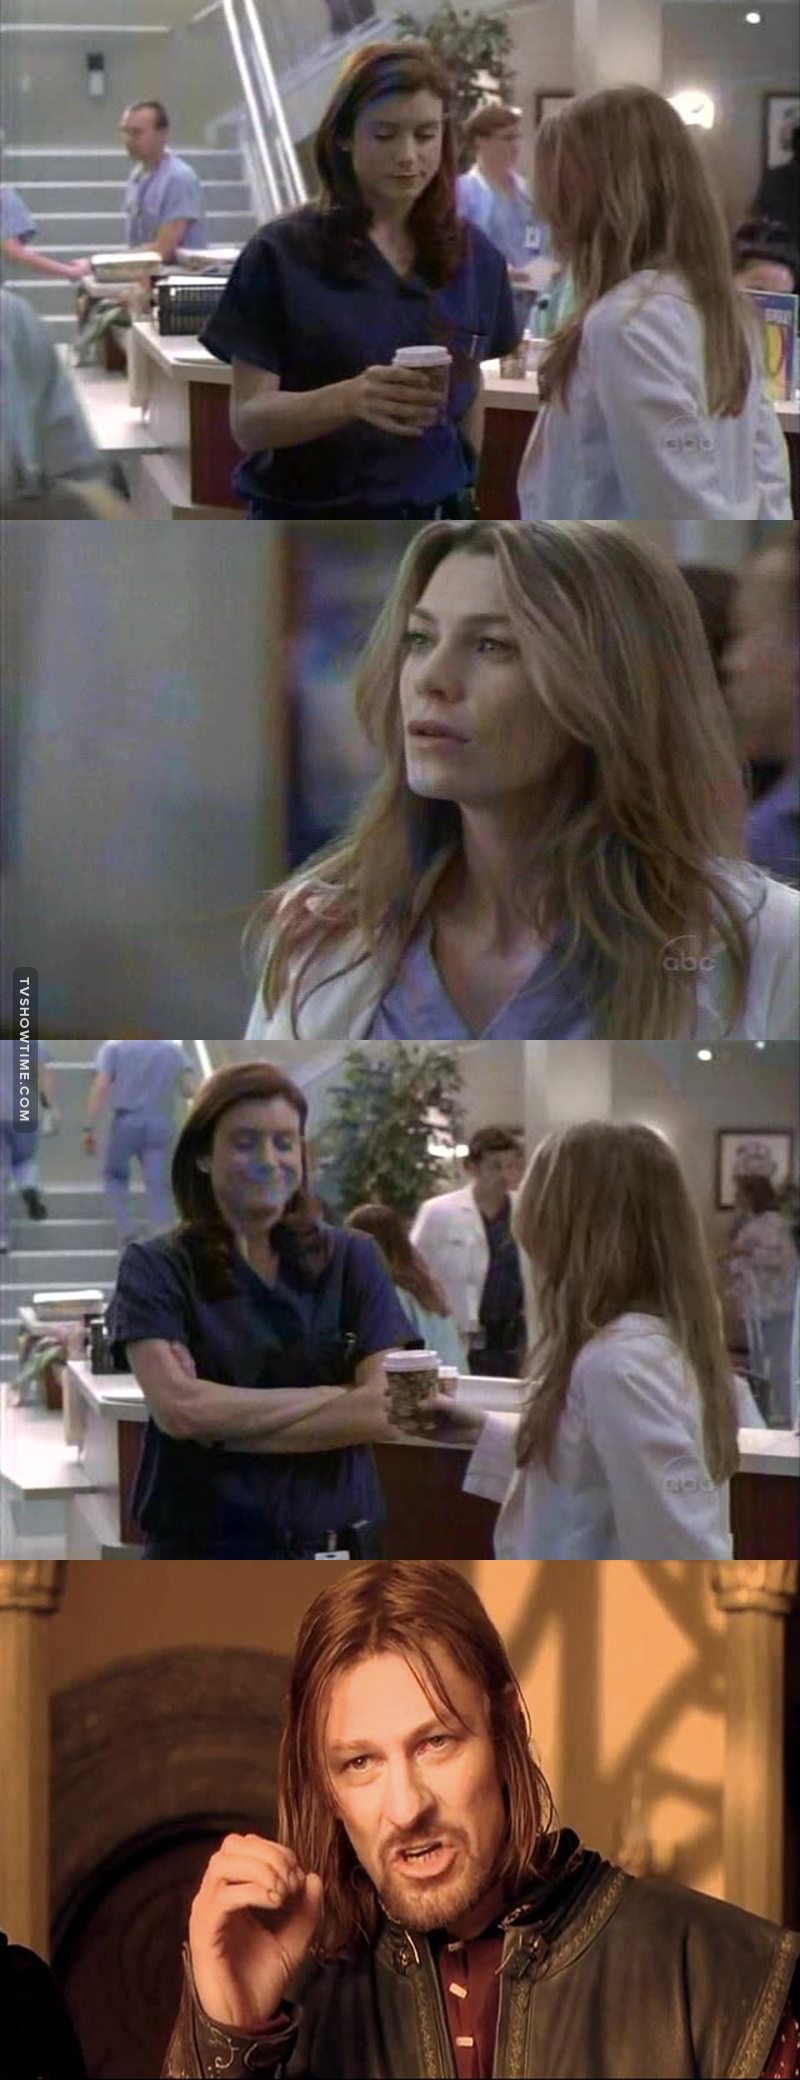 That moment when Meredith throws her coffee away